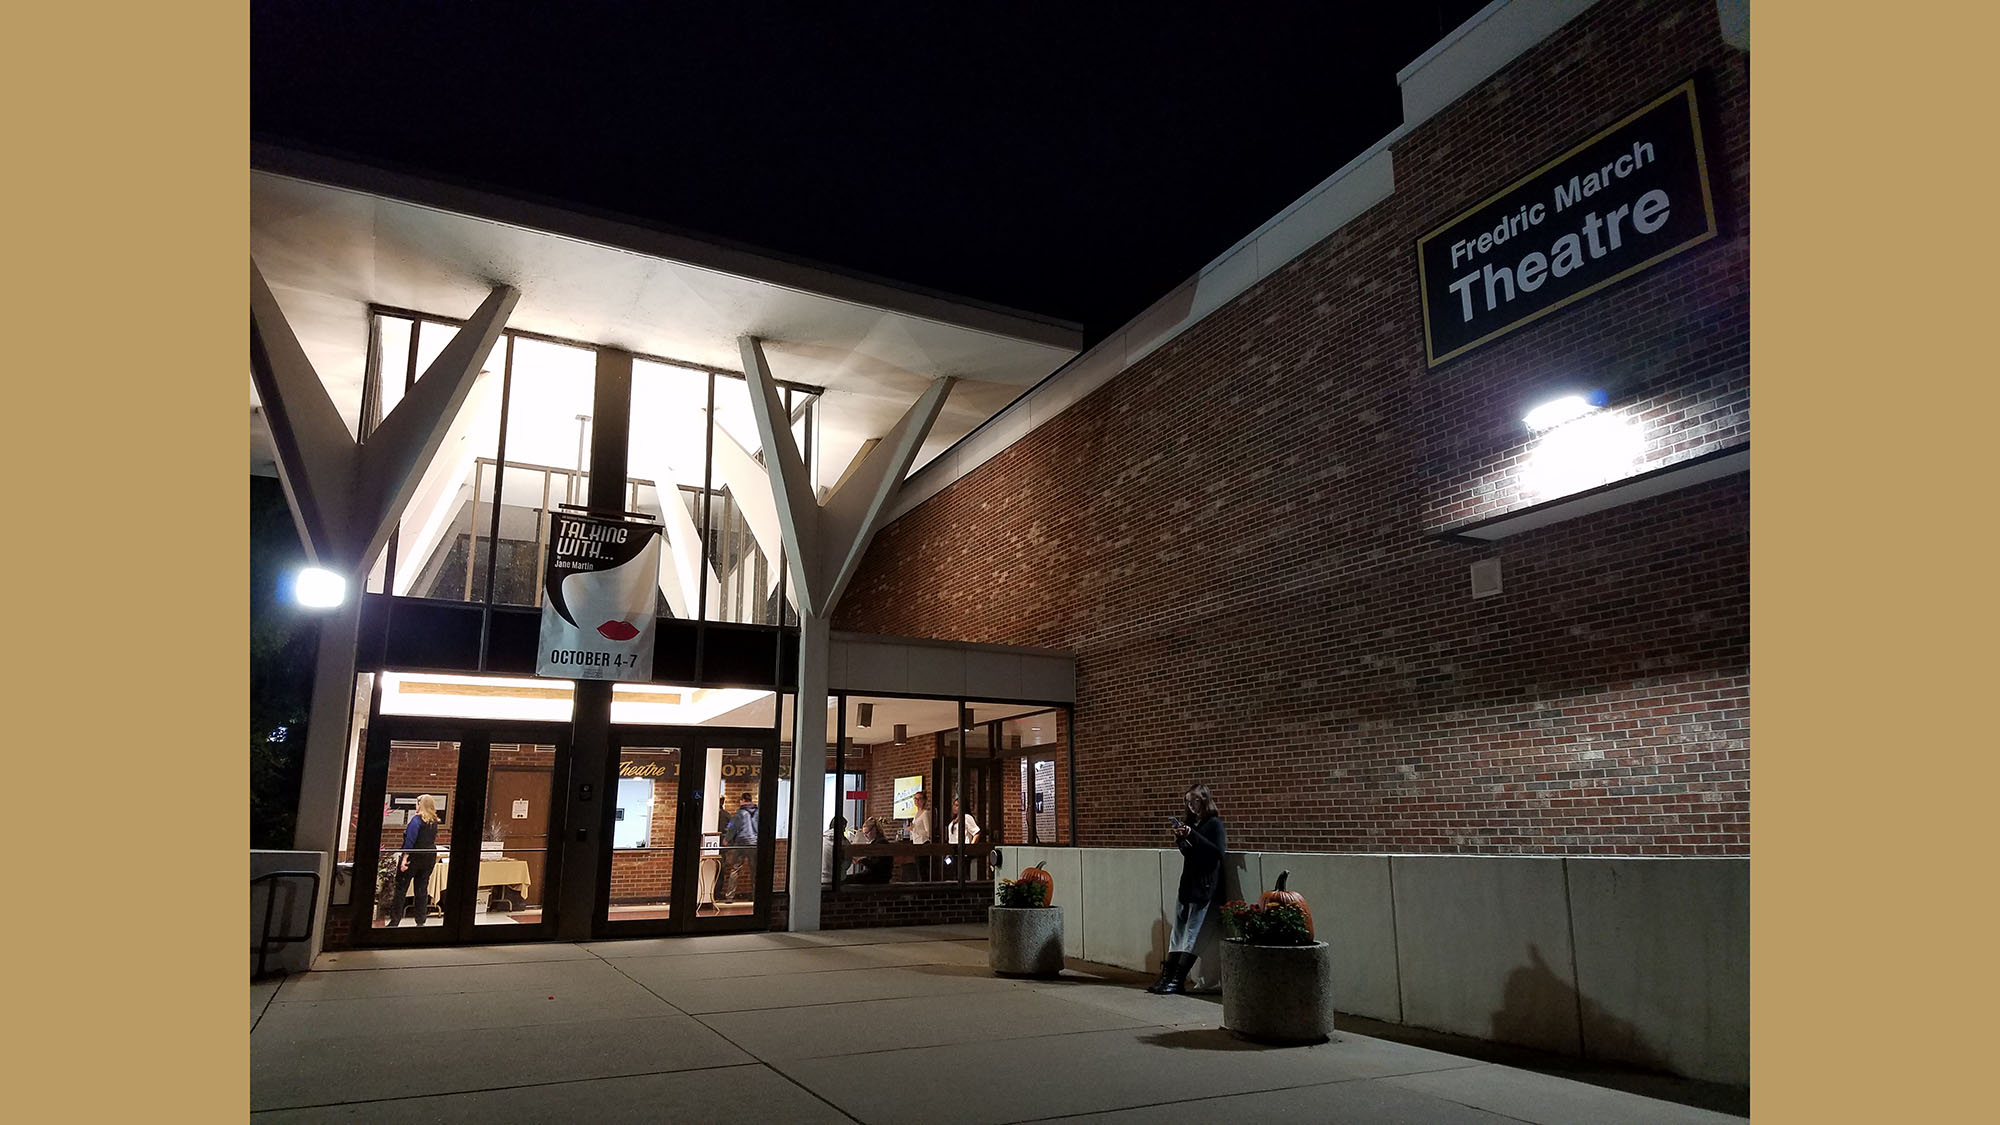 Warren Gerds Critic At Large Fredric March Name Scratched From Uw Oshkosh Theater